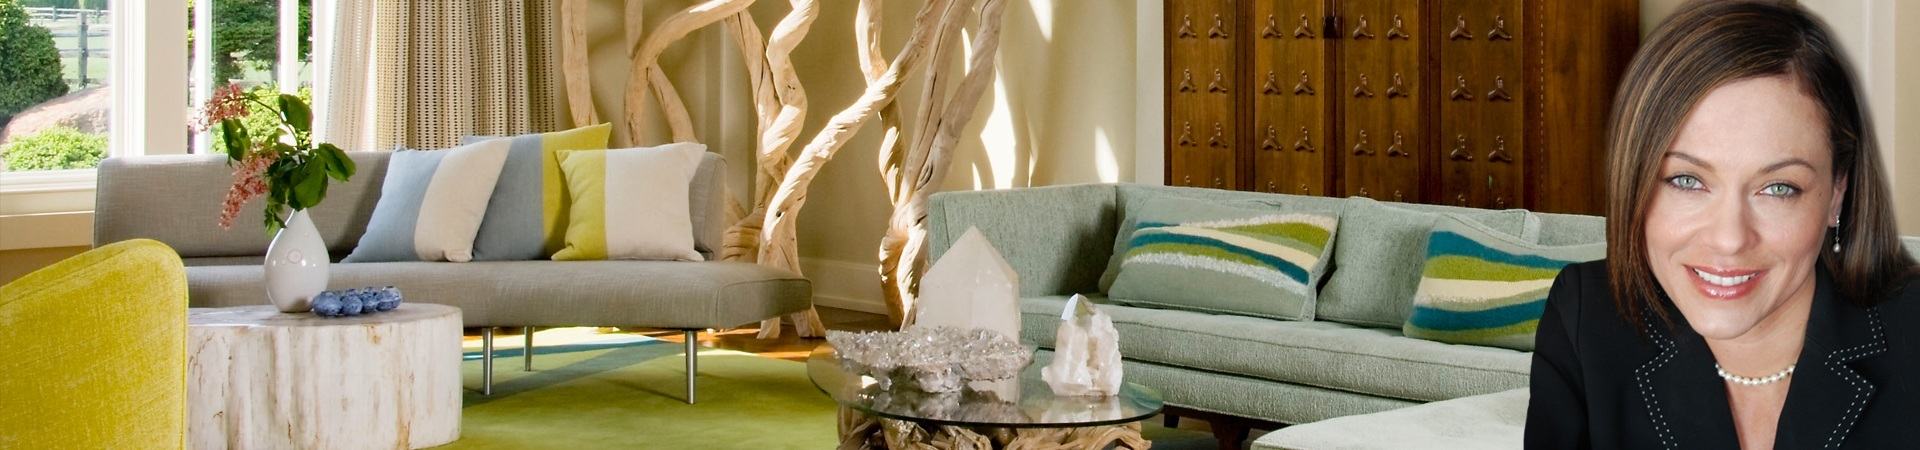 Interior Design In Las Vegas And Feng Shui Services